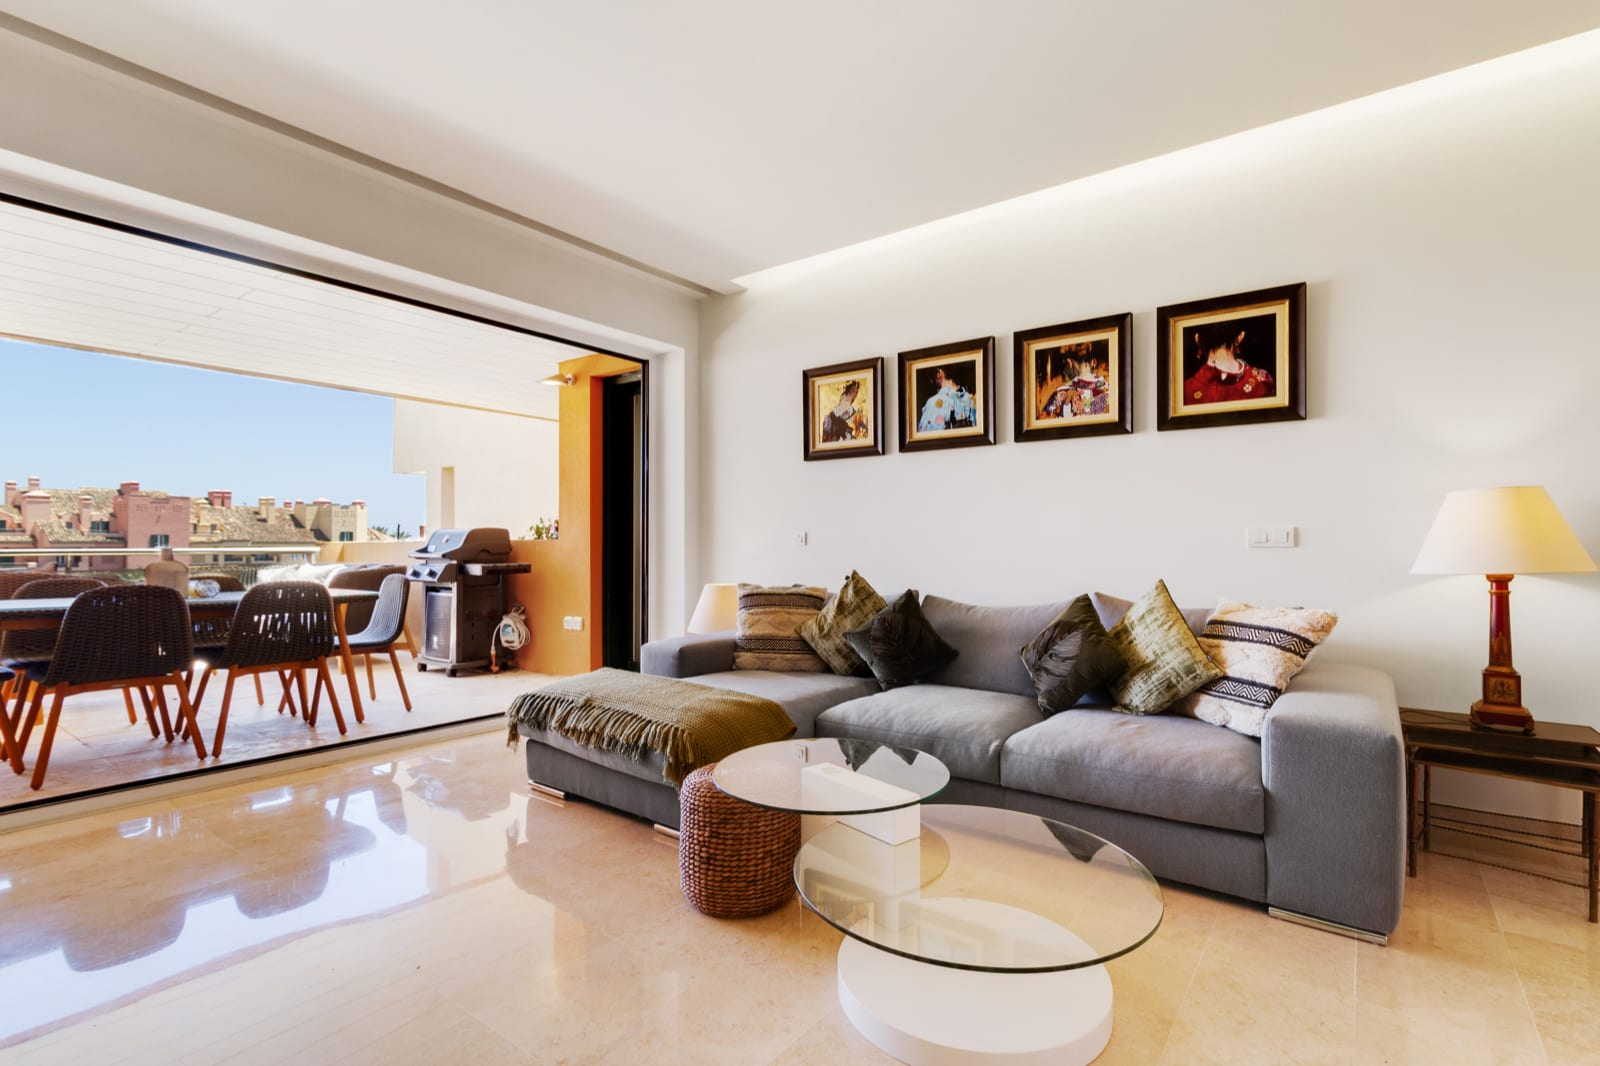 Fabulous 2 bed apartment fully furnished for sale, Ribero Marlin, Sotogrande